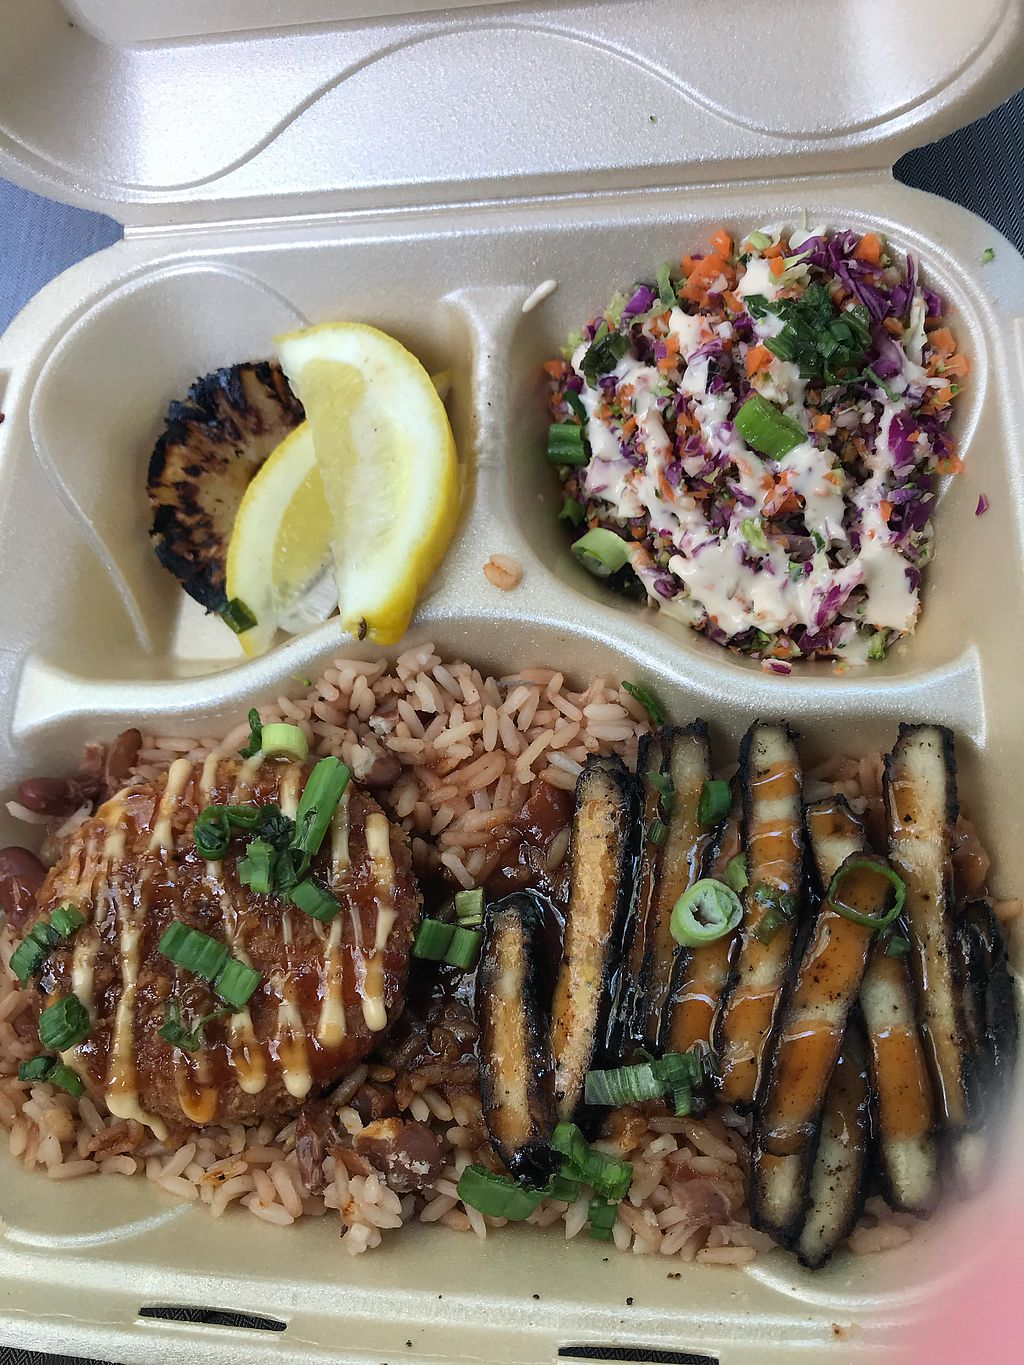 """Photo of Dajen Eats  by <a href=""""/members/profile/AmbrLgh"""">AmbrLgh</a> <br/>Rice and Jerk Chik'n To Go  <br/> April 12, 2018  - <a href='/contact/abuse/image/95211/384710'>Report</a>"""